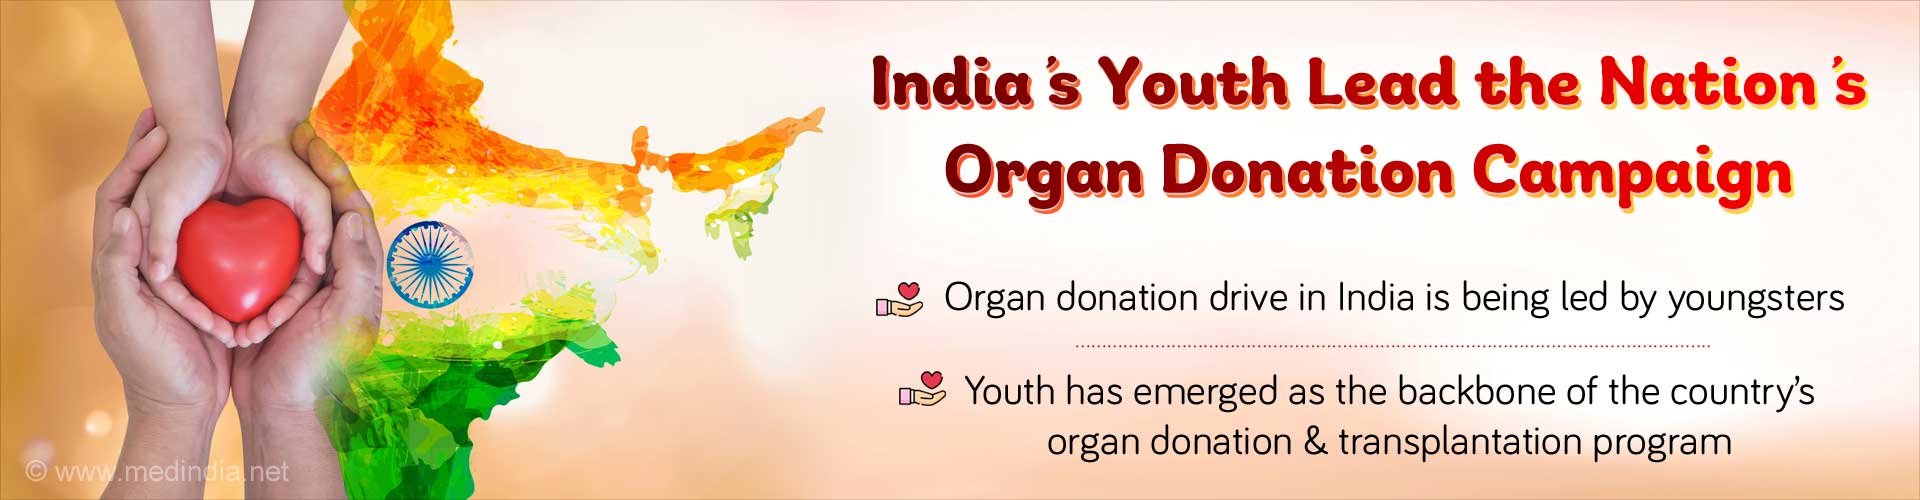 Organ Donation Drive in India Led by Youngsters